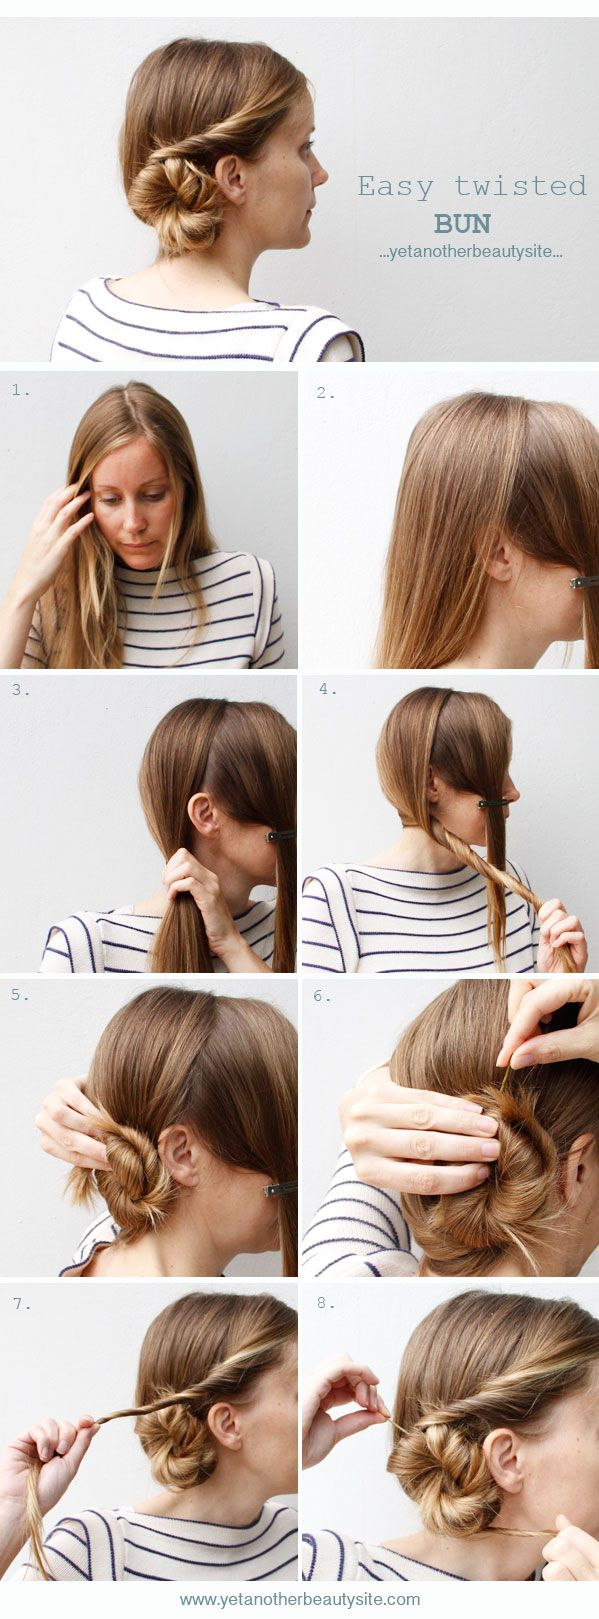 Easy twisted bun from yetanotherbeautysite click on the picture